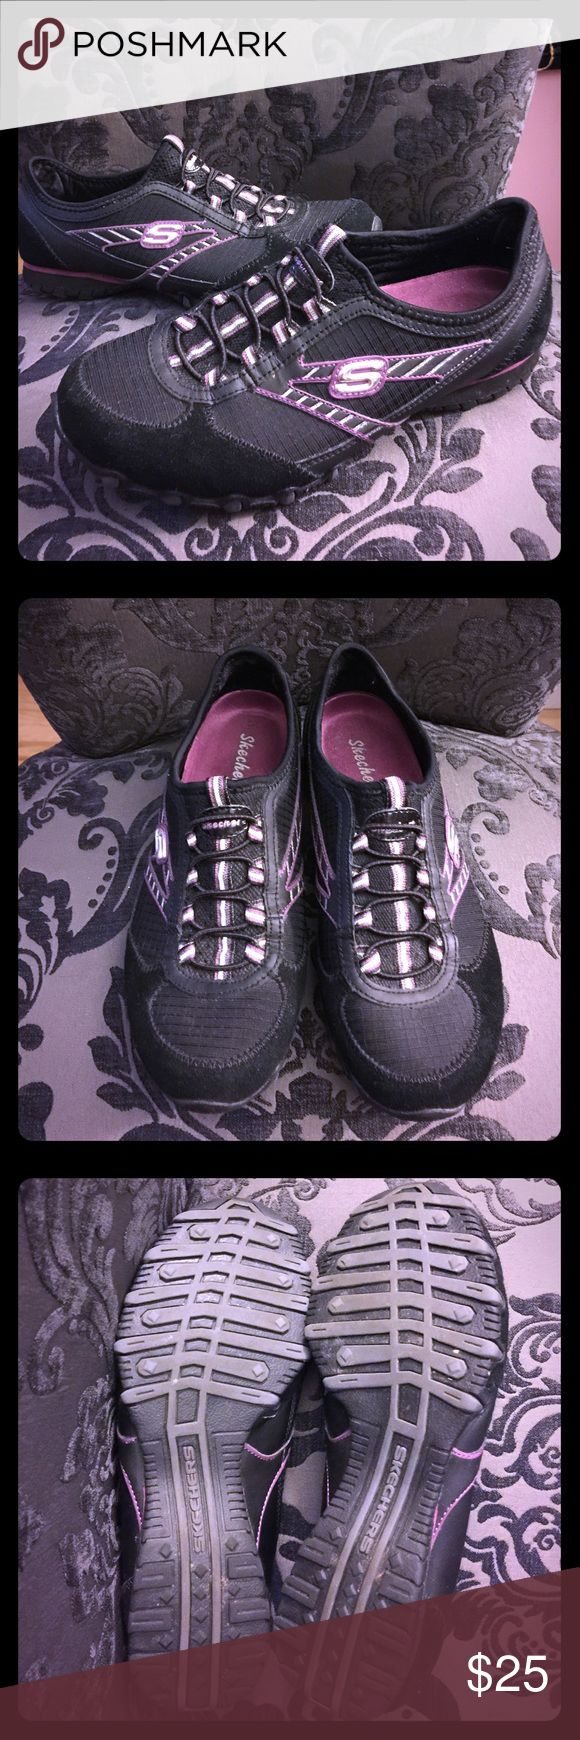 Black & Lavender No Lace Skechers Sneakers Black & Lavender No Lace Skechers Sneakers - Only Worn Once or Twice, Great Condition! Skechers Shoes Sneakers